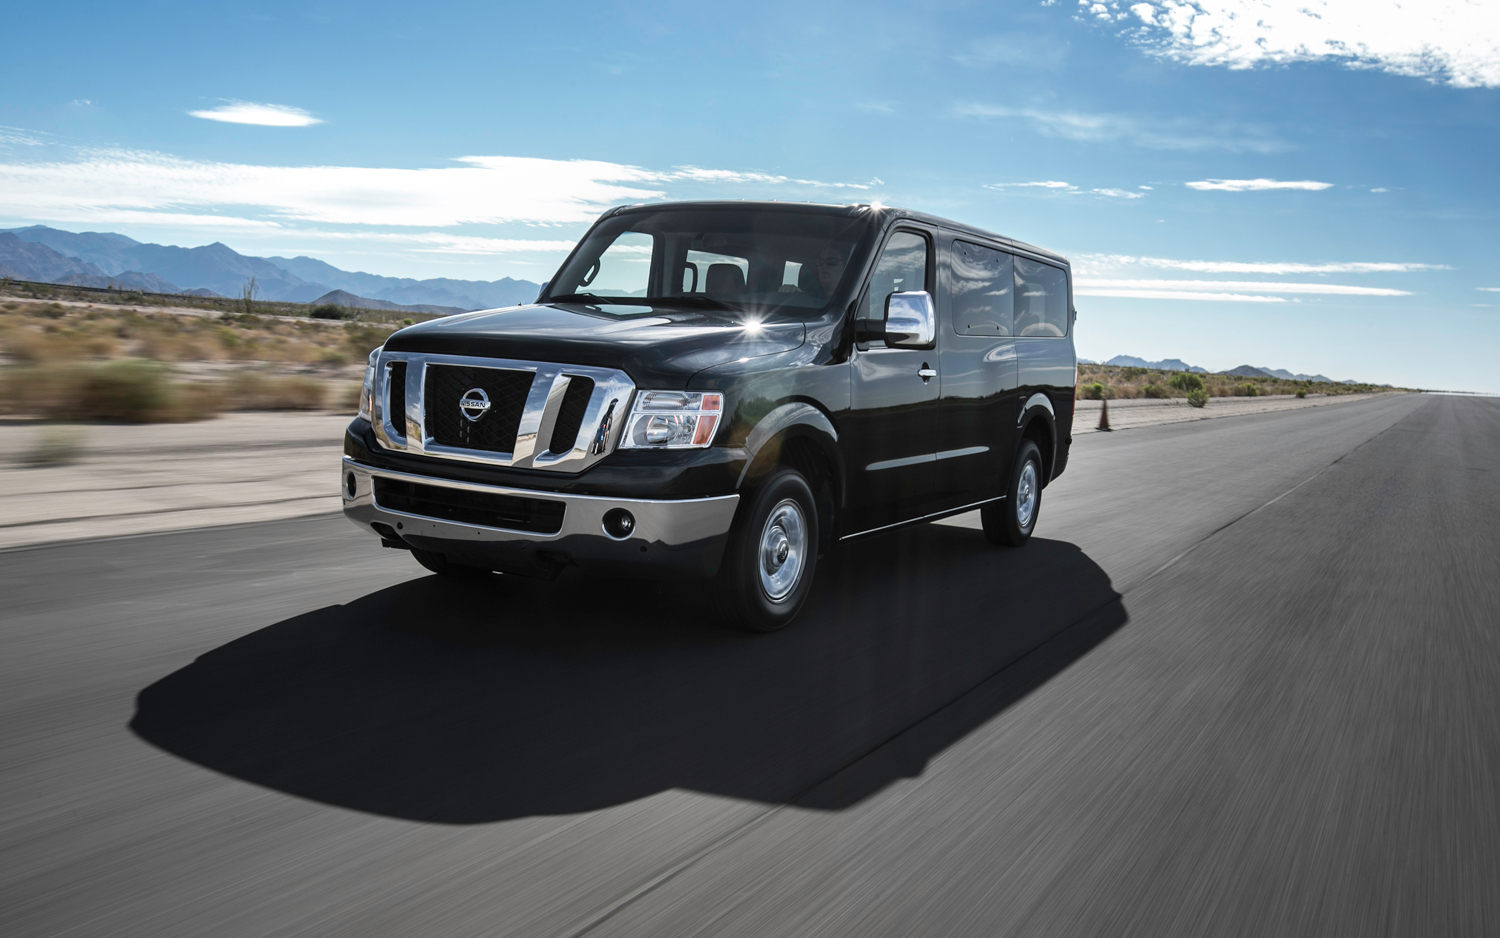 2013 nissan nv passenger - information and photos - zombiedrive